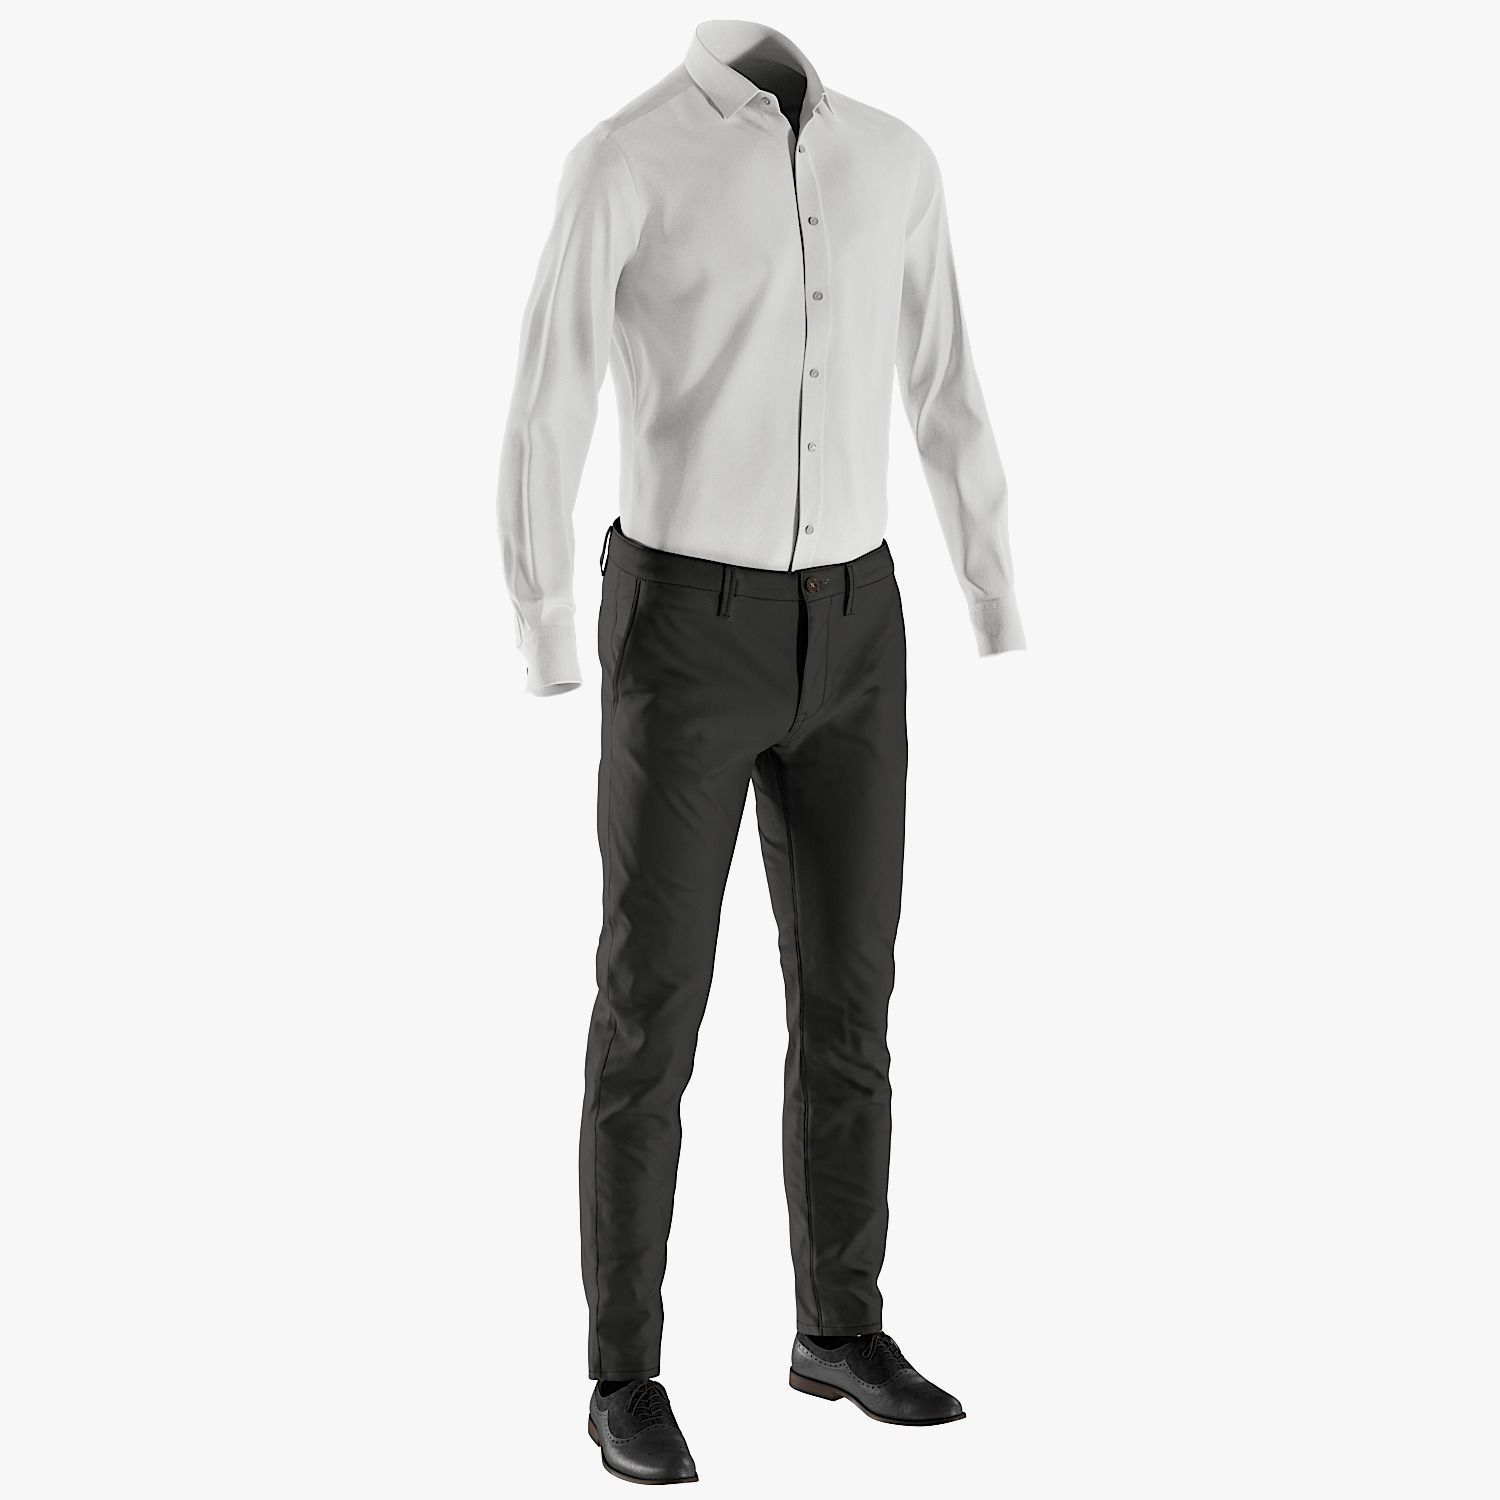 Mens Pants with Shirt Shoes 6